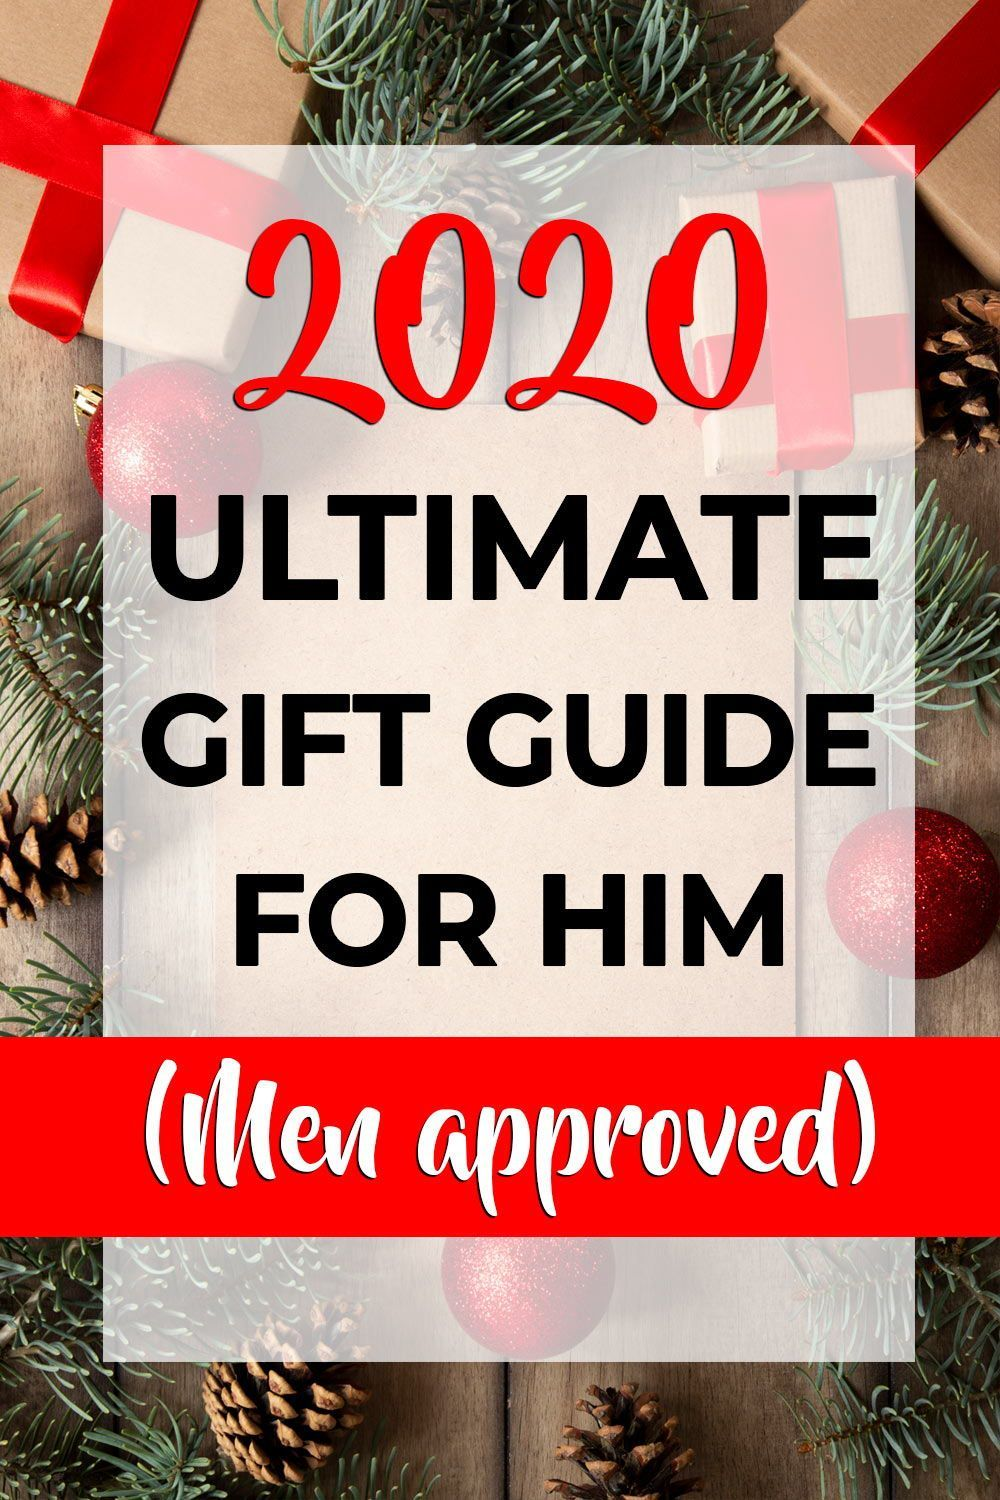 Best 10 Gifts That Every Man Would Love In 2020 Best Gifts Deals In 2020 Best Boyfriend Gifts Best Gift For Husband Gift Guide For Him